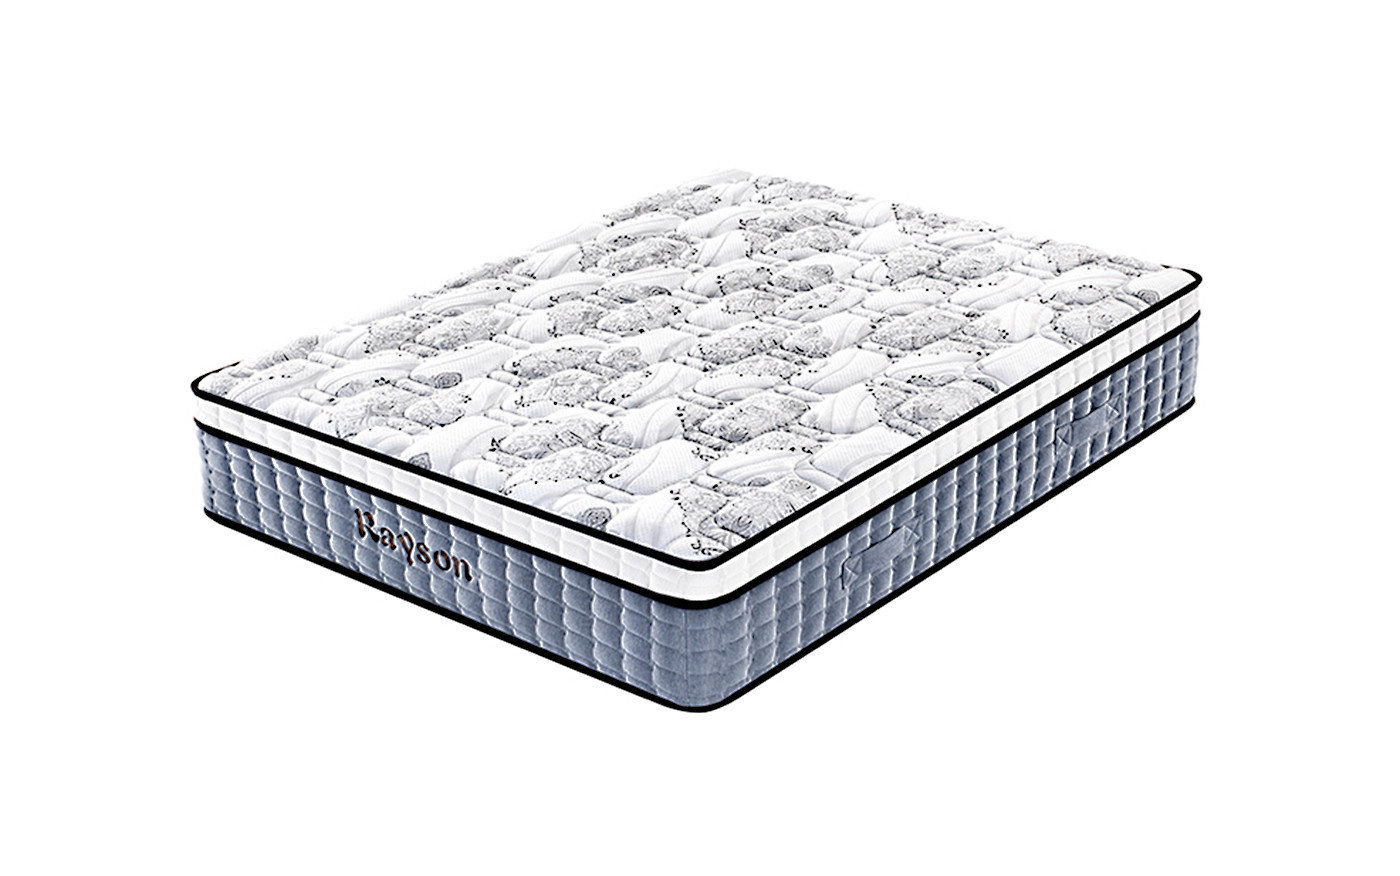 Synwin hotel bed mattress customized for sleep-1